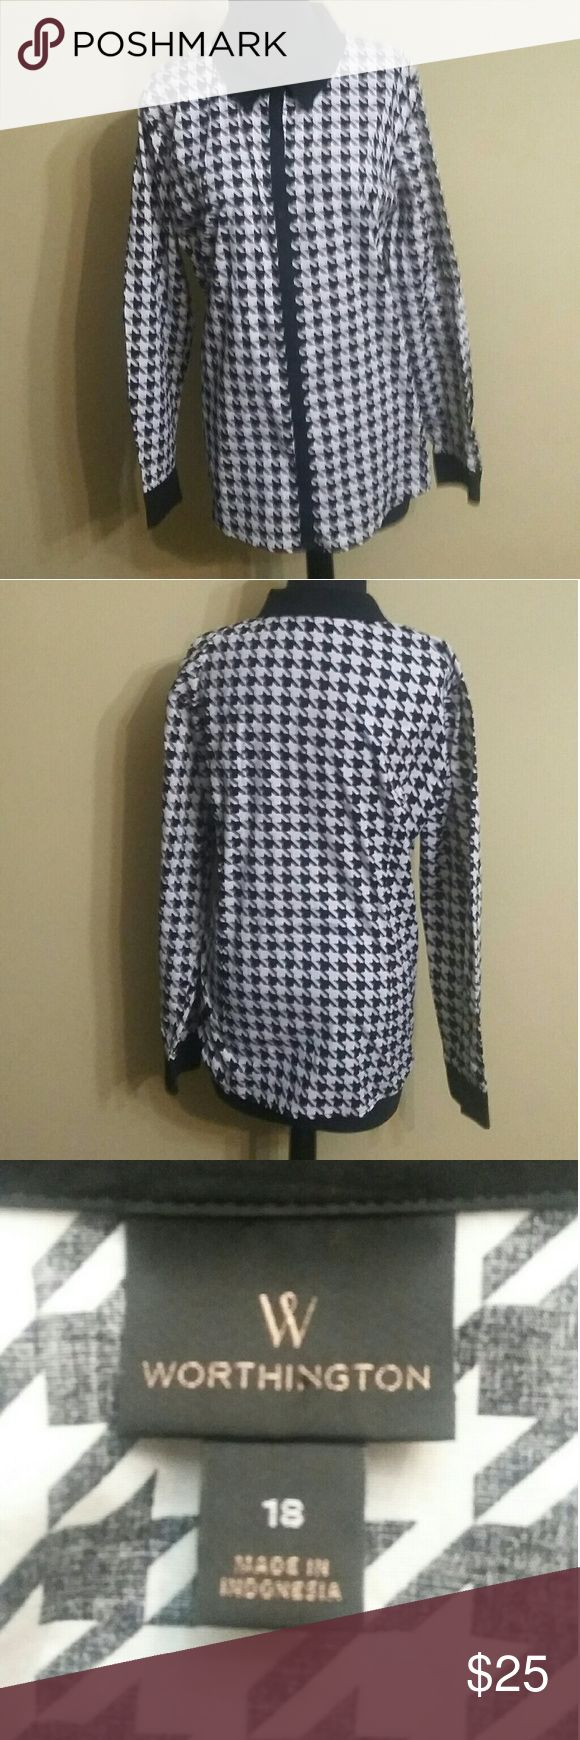 Worthington houndstooth shirt Black and white Worthington large houndstooth shirt. It is a really nice shirt in almost new condition and it feels expensive. Worthington Tops Button Down Shirts